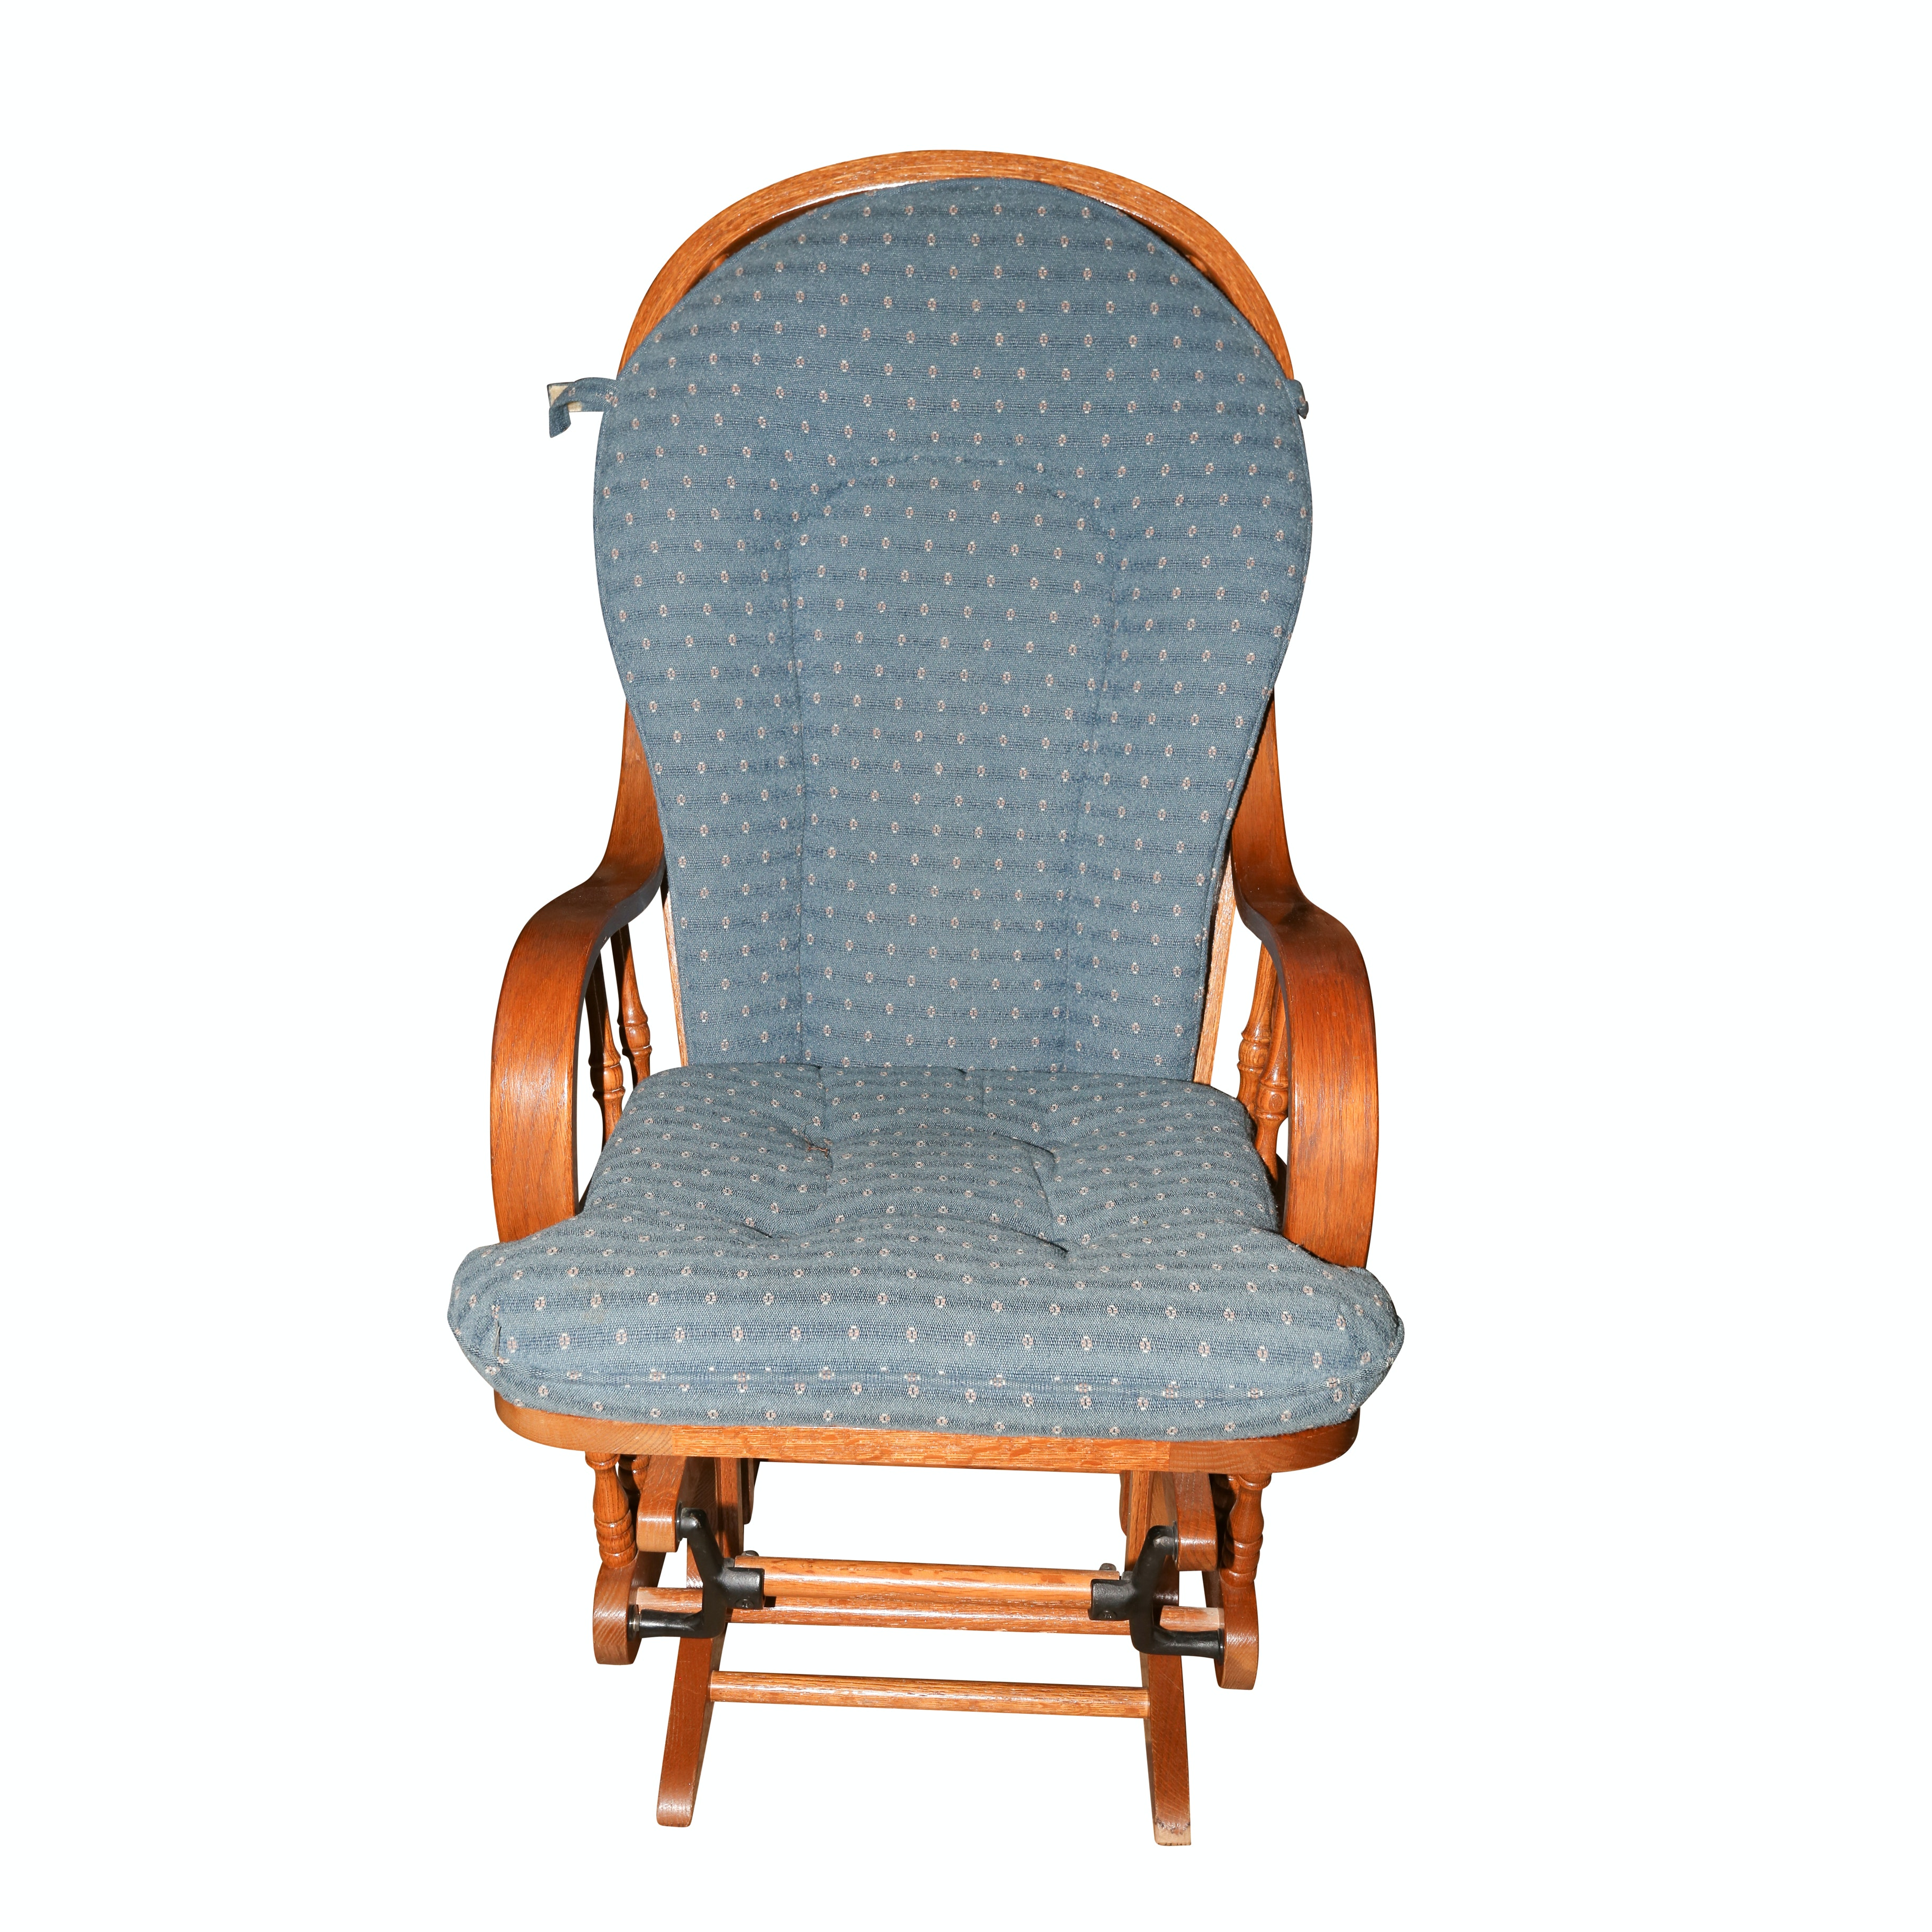 Oak Glider Rocking Chair with Removable Cushions